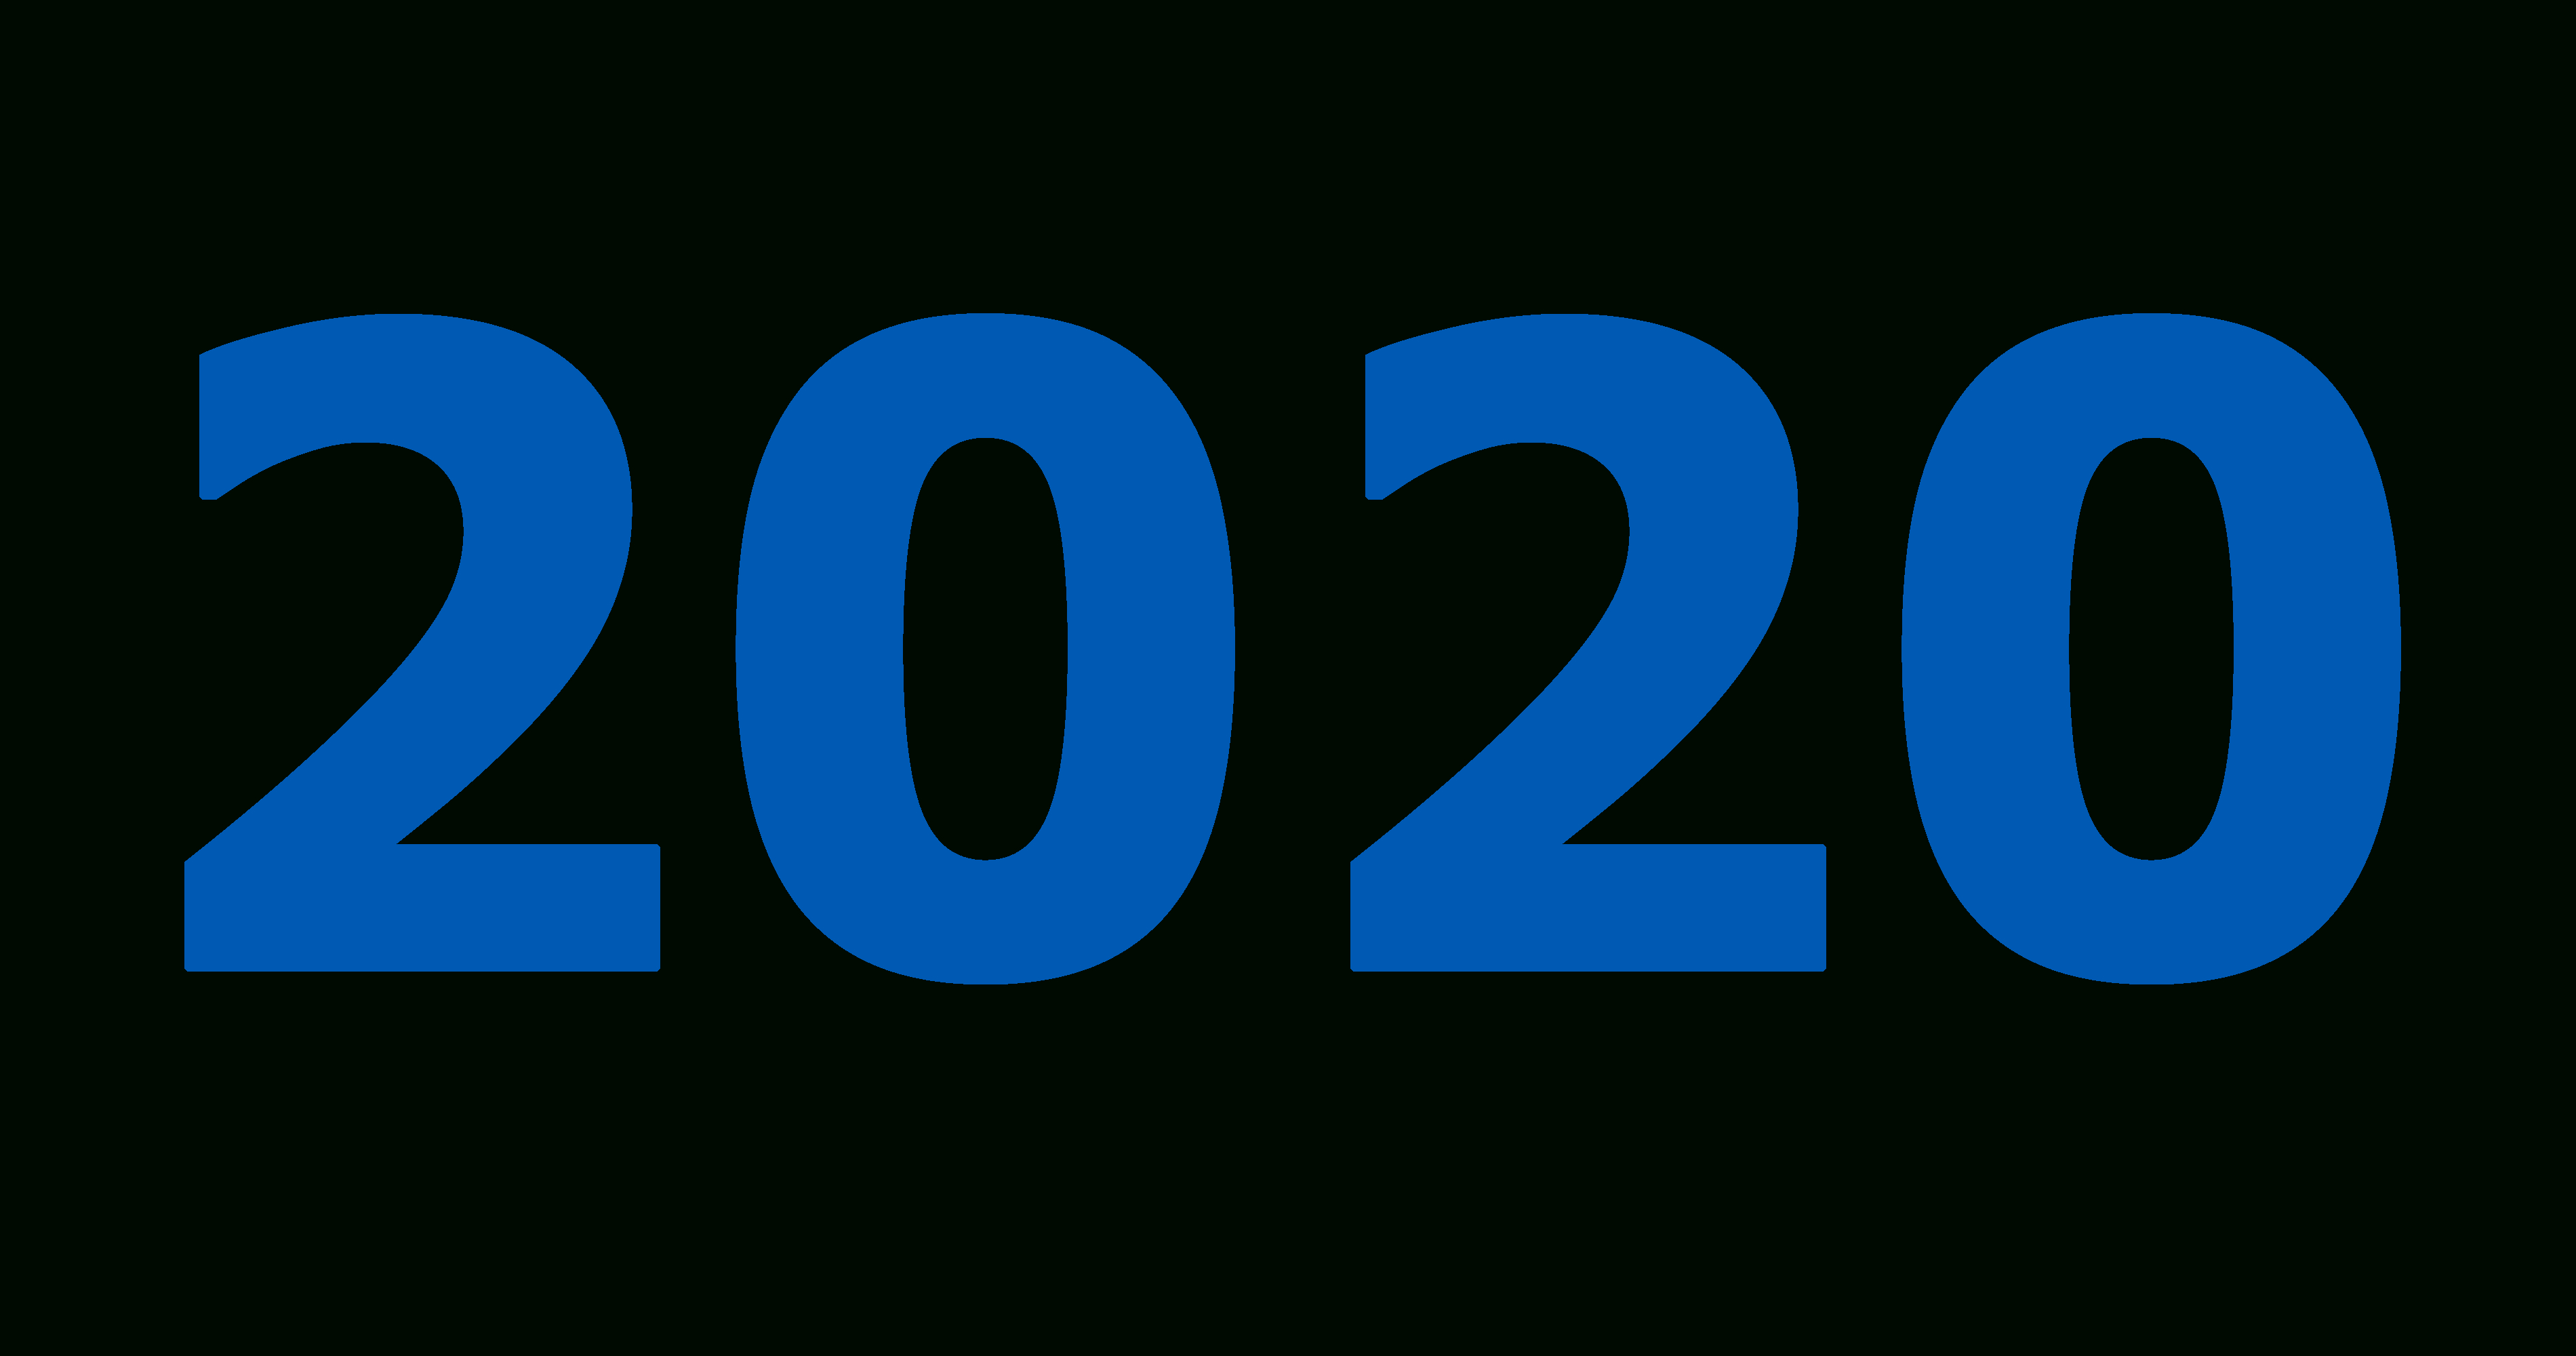 2020 Year Png inside 2020 Transparent Background